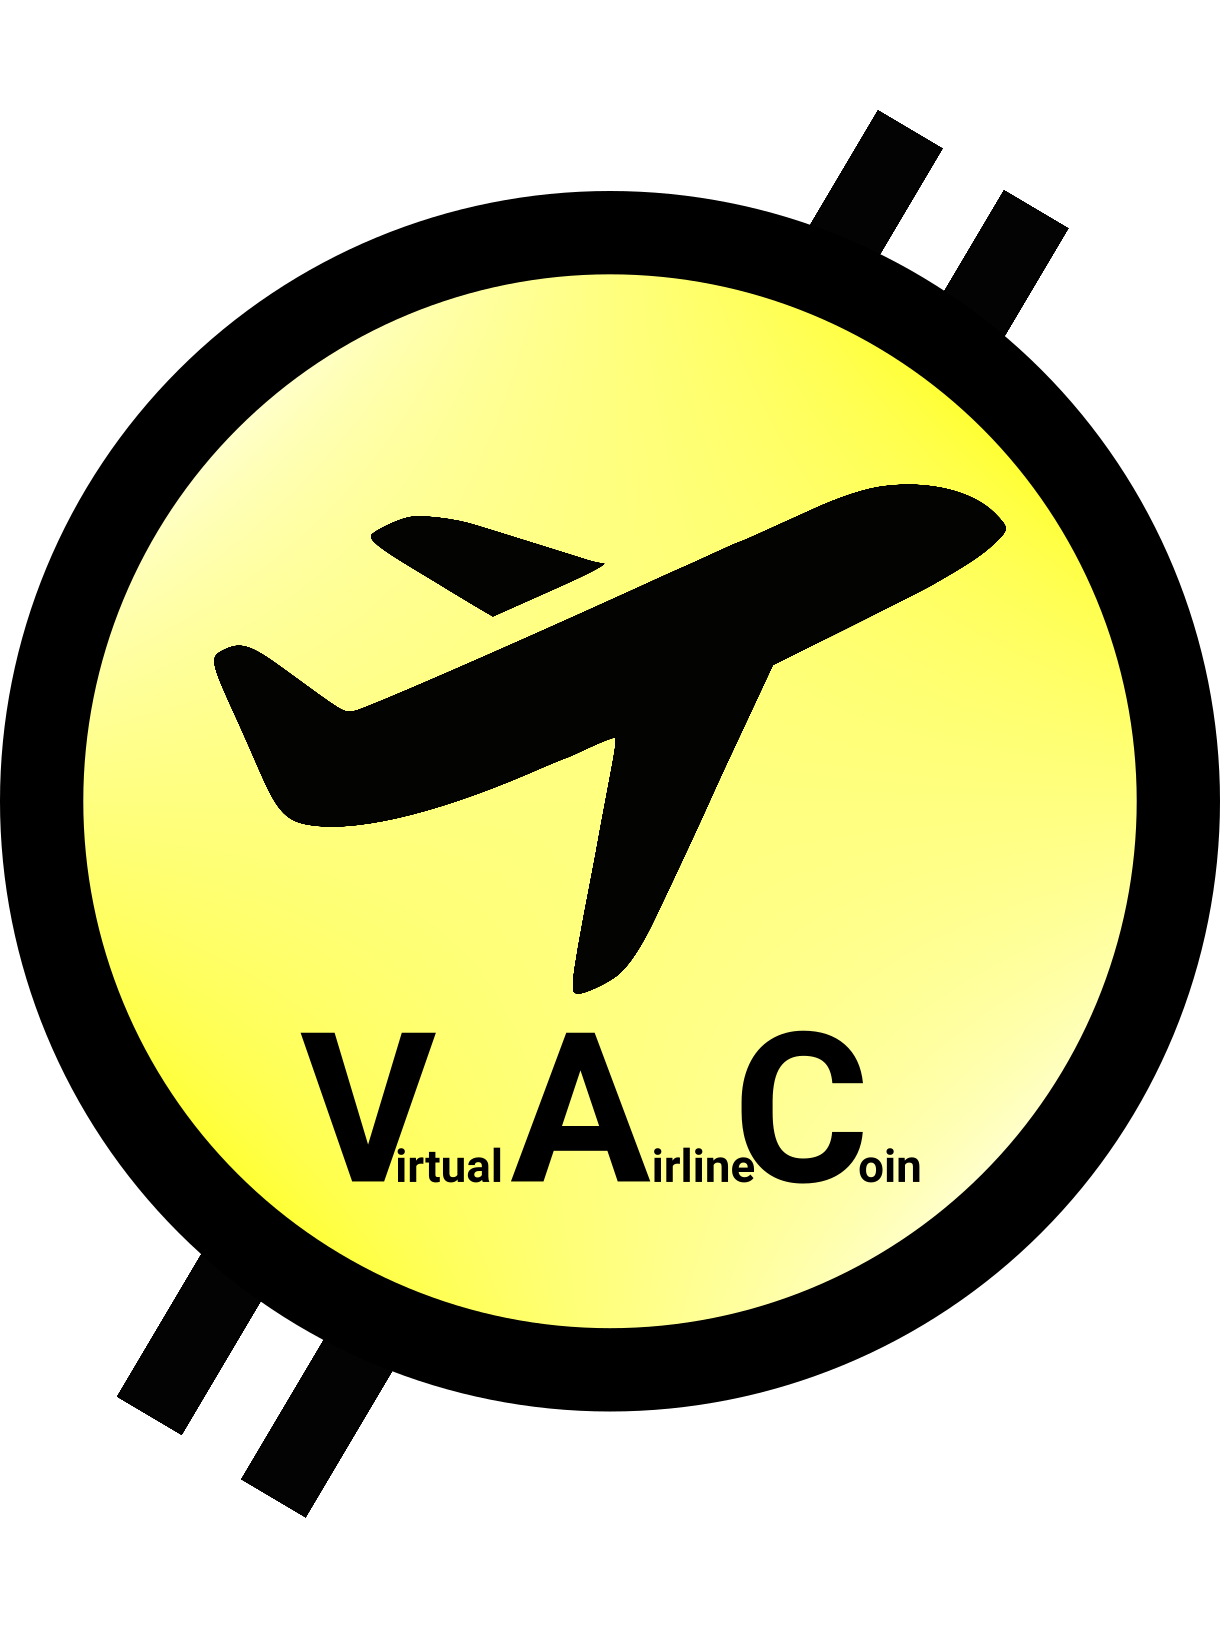 Virtual Airline Coin (VACoin)